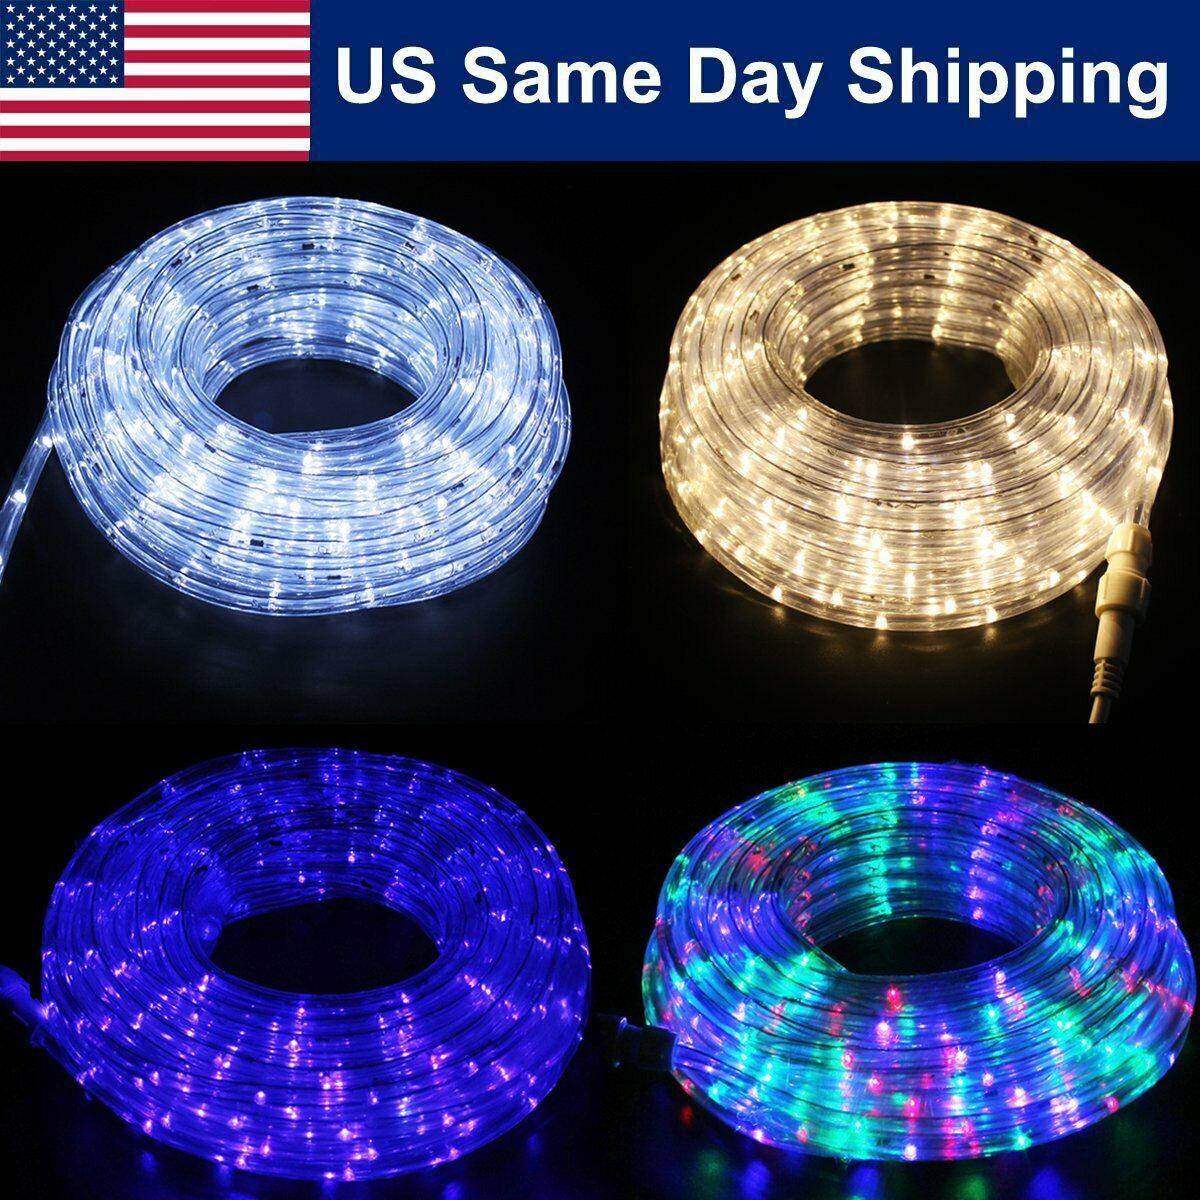 Details about 50'LED Rope Light Outdoor/Indoor Home